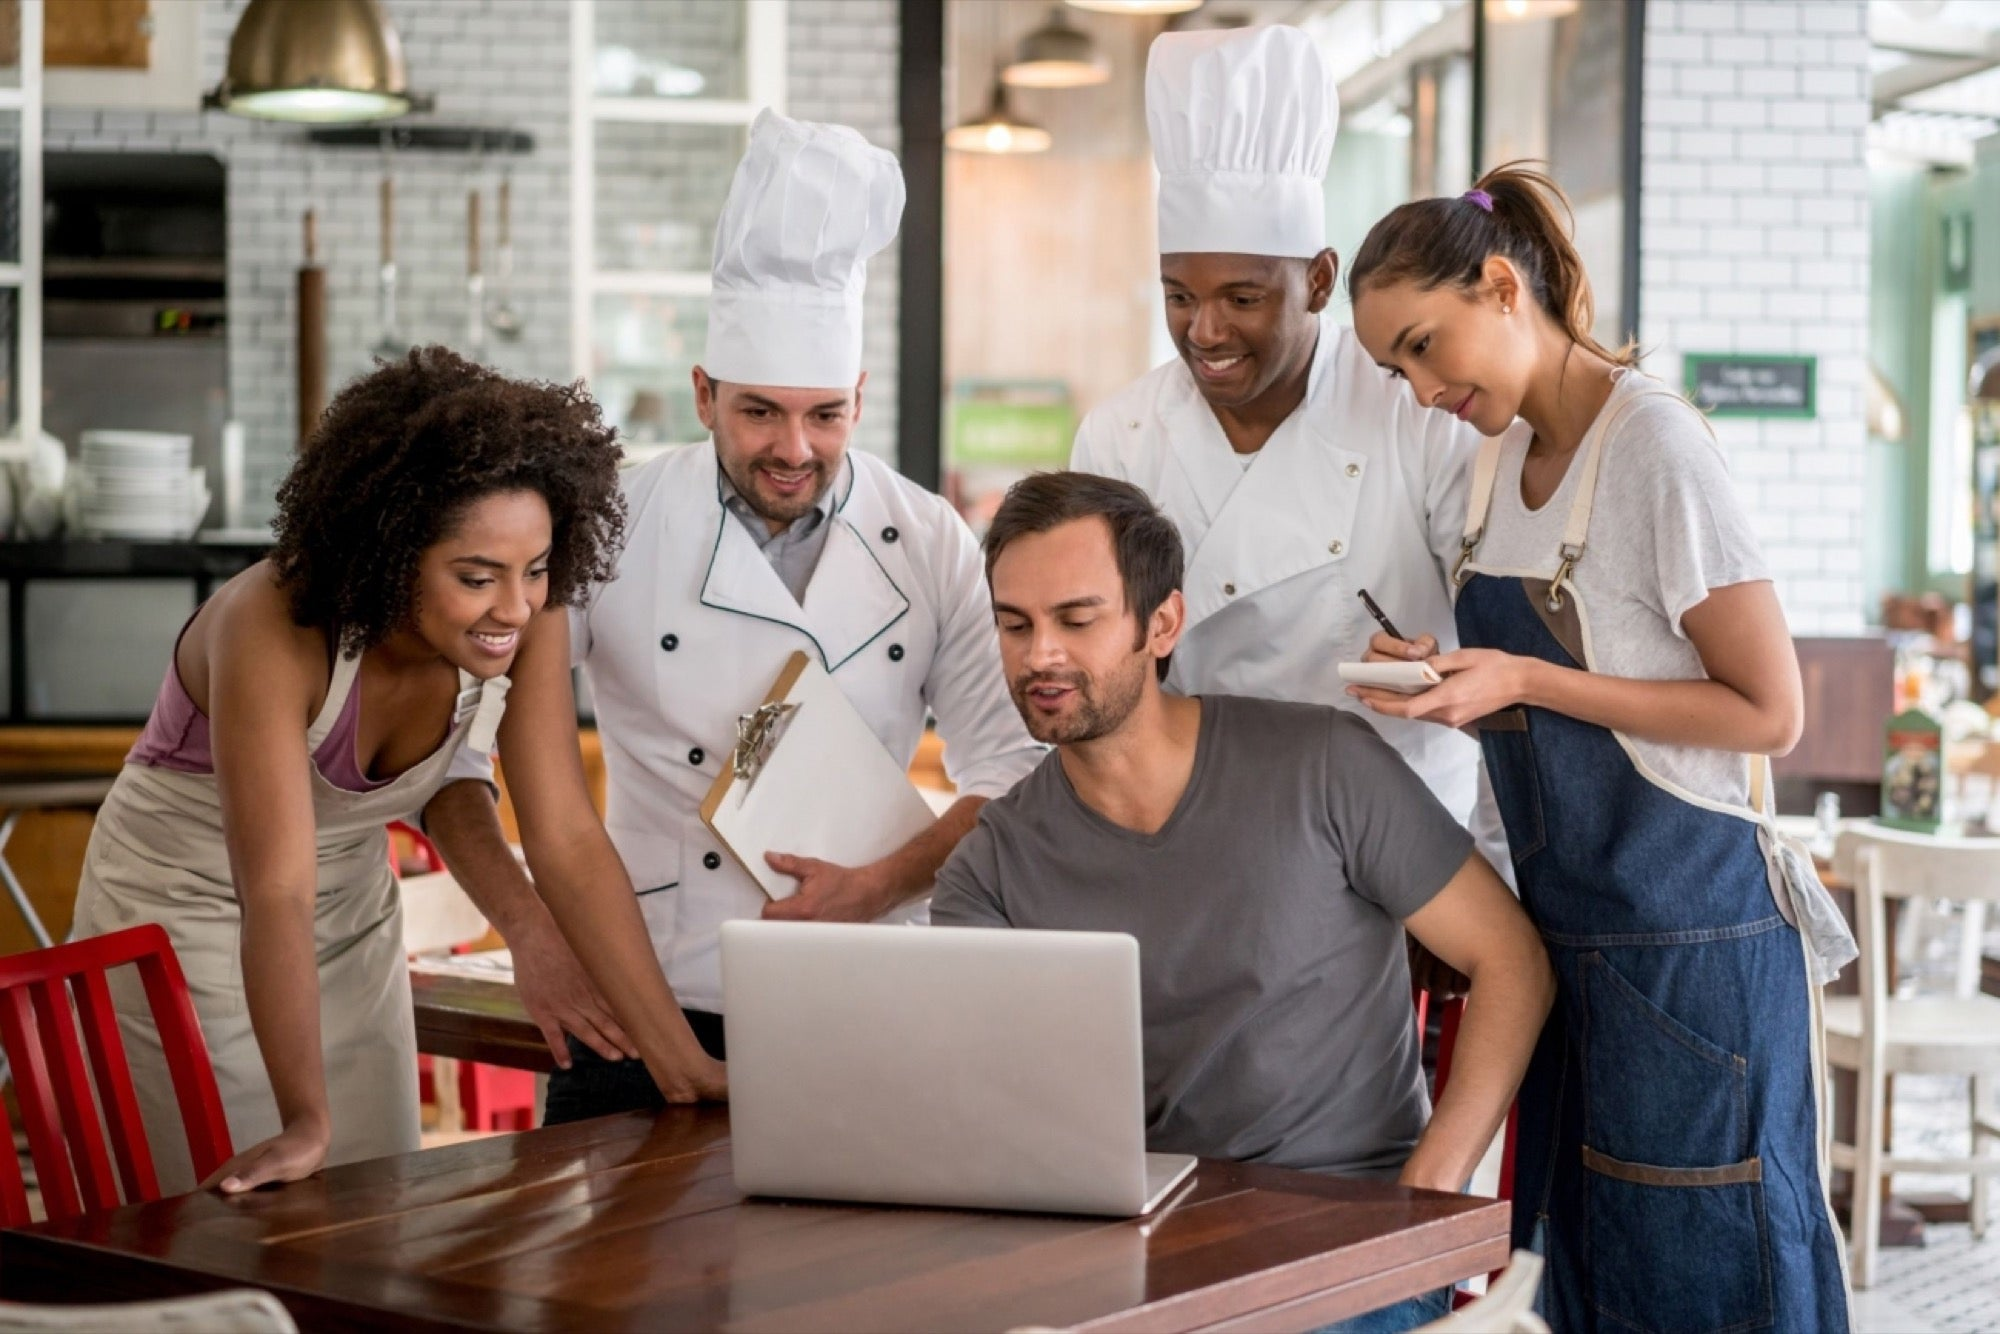 Staff You Need To Hire Run A Restaurant